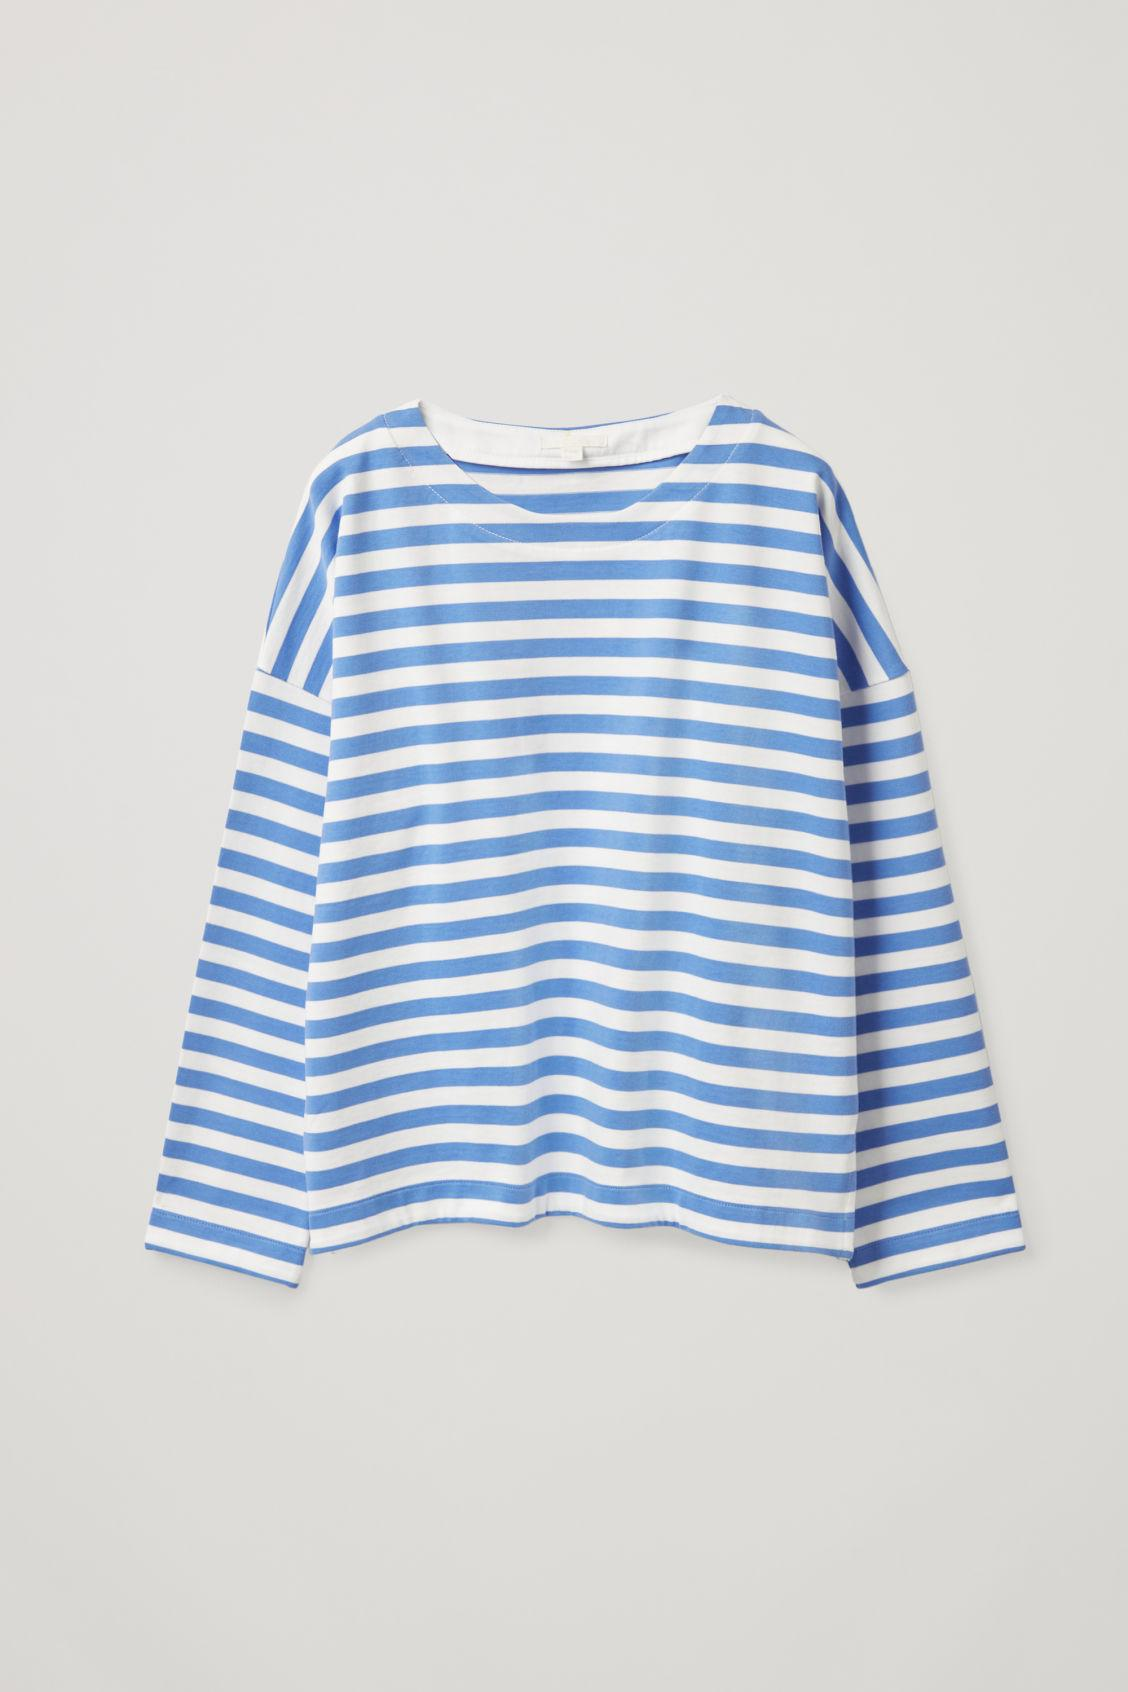 BOXY-FIT TOP 5